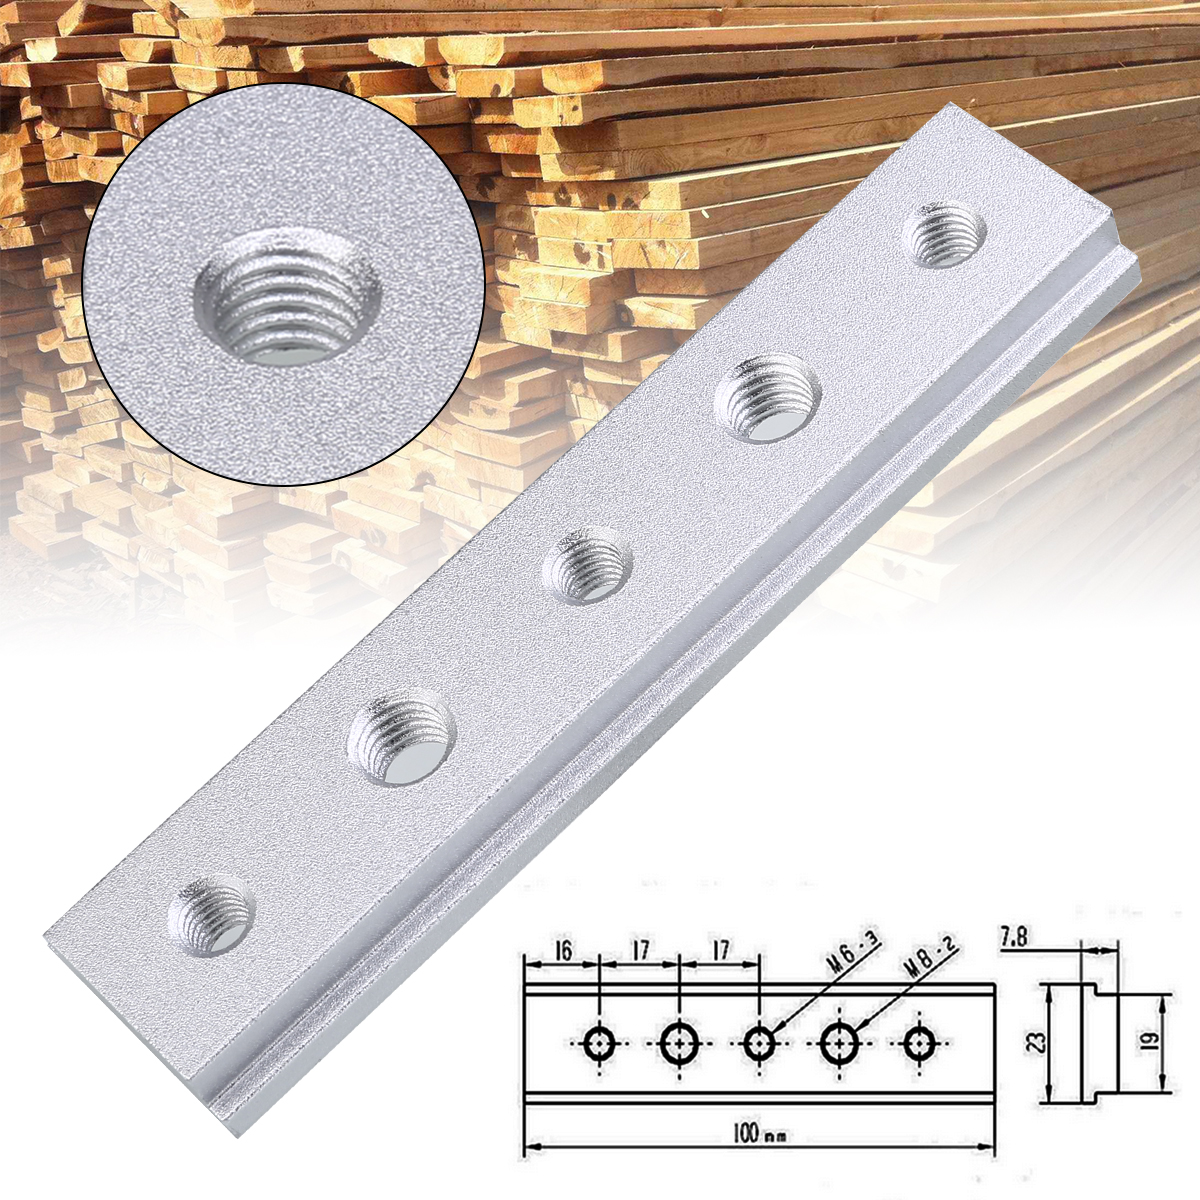 1pc Durable 100mm Aluminium Alloy T-Slot T-Track Miter Track Jig Fixture T Track Slot Slide Slab For Woodworking Tools